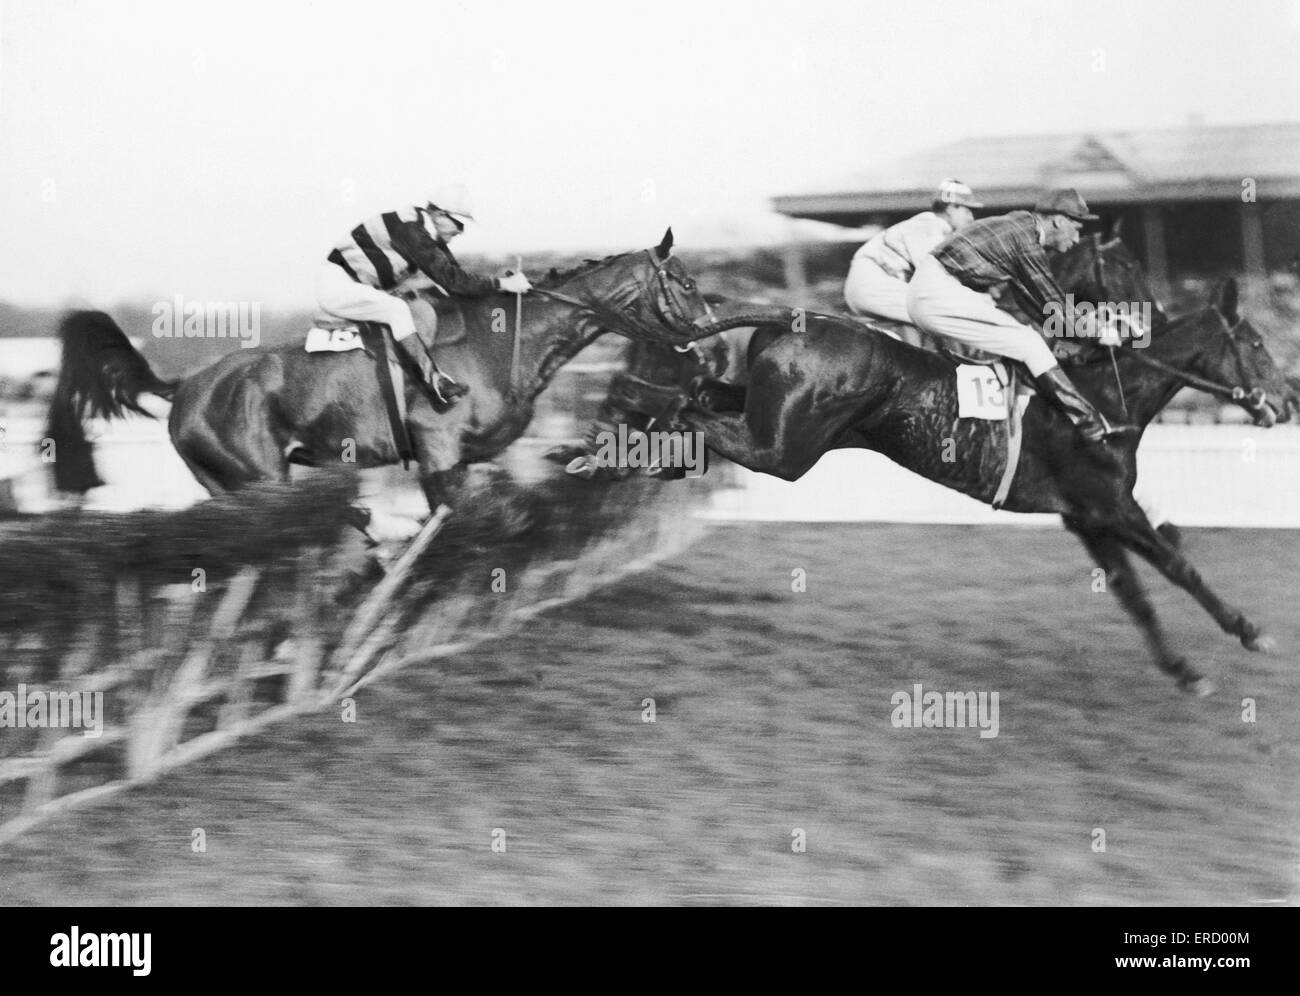 Horseracing action in the Horley Steeplechase Hurdle at Gatwick. 9th January 1925. Stock Photo